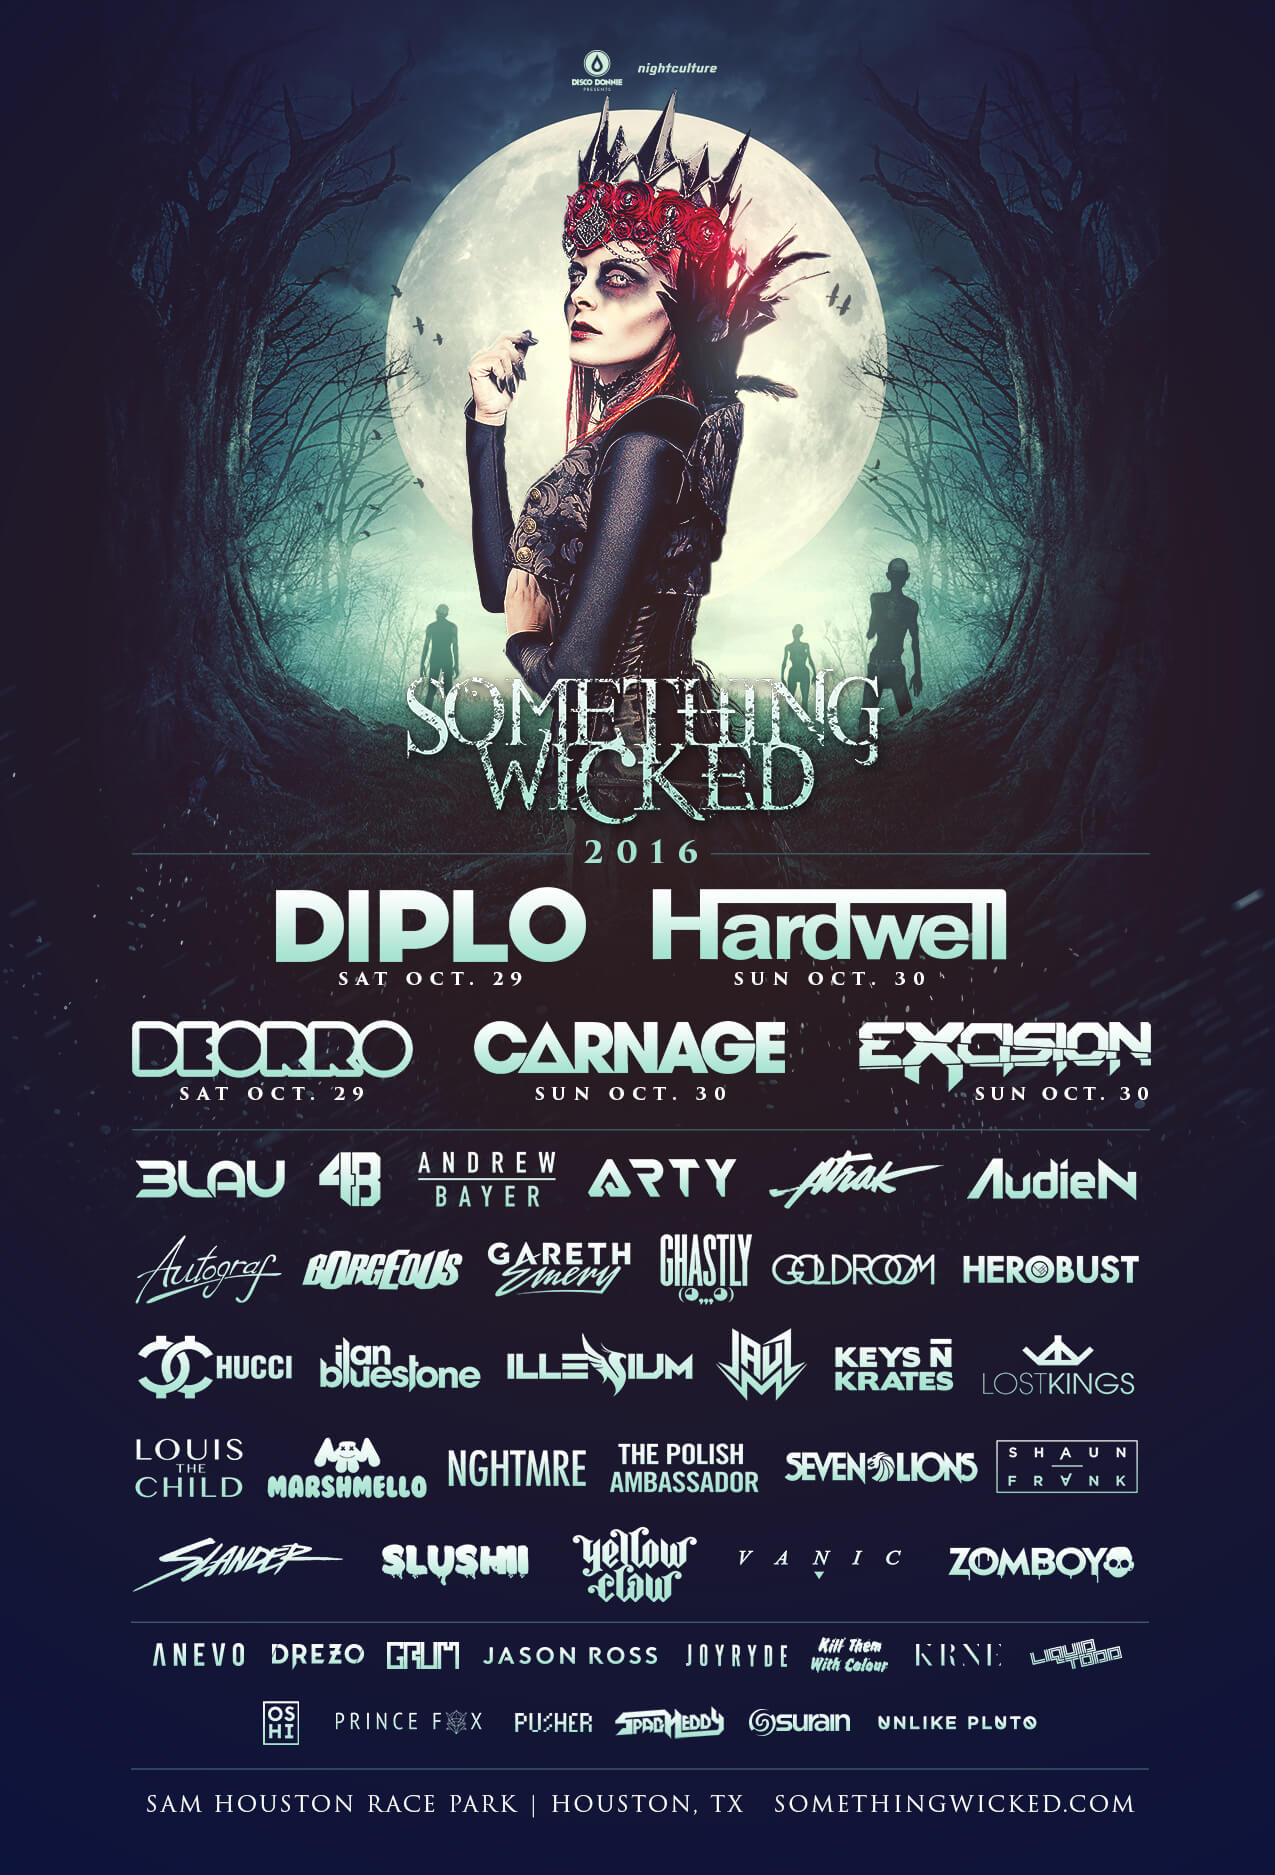 12ce9597-something-wicked-2016-lineup-poster